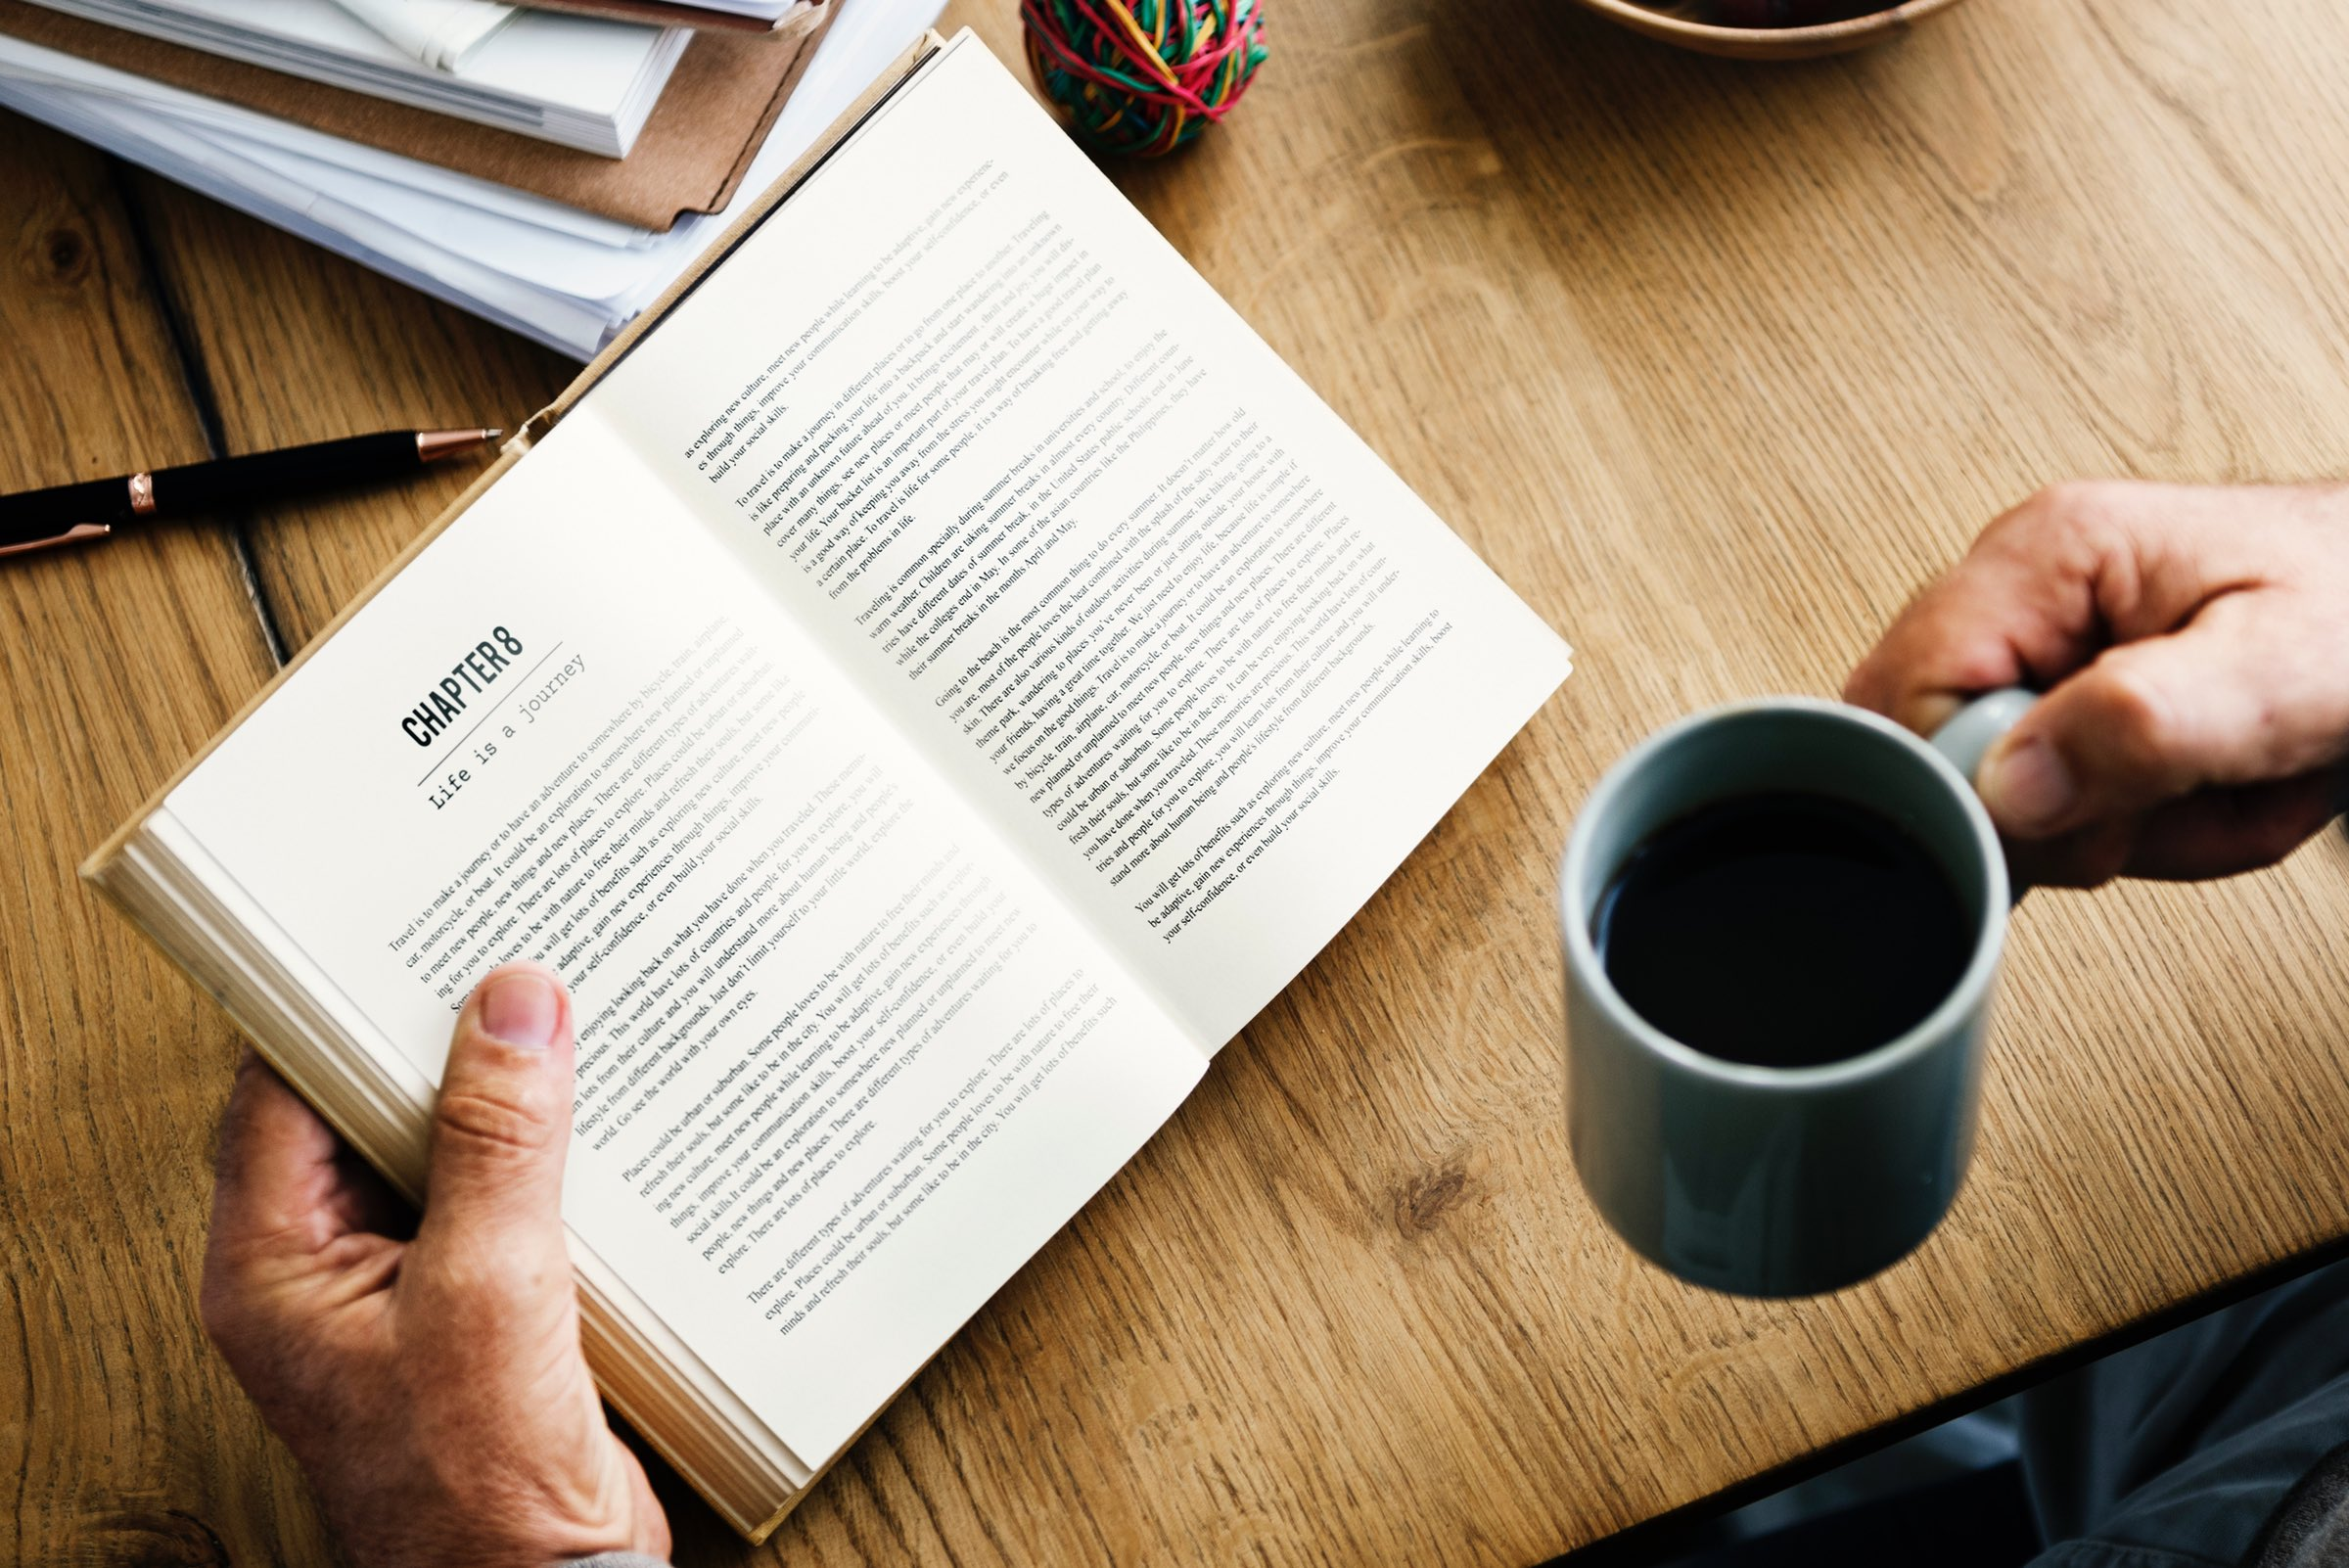 Image of: Book Courtesy Of Unsplash Httpsunsplashcomphotosq7gjsxhdzng The Sweet Setup How To Use Day One As Commonplace Book Part Iii The Sweet Setup